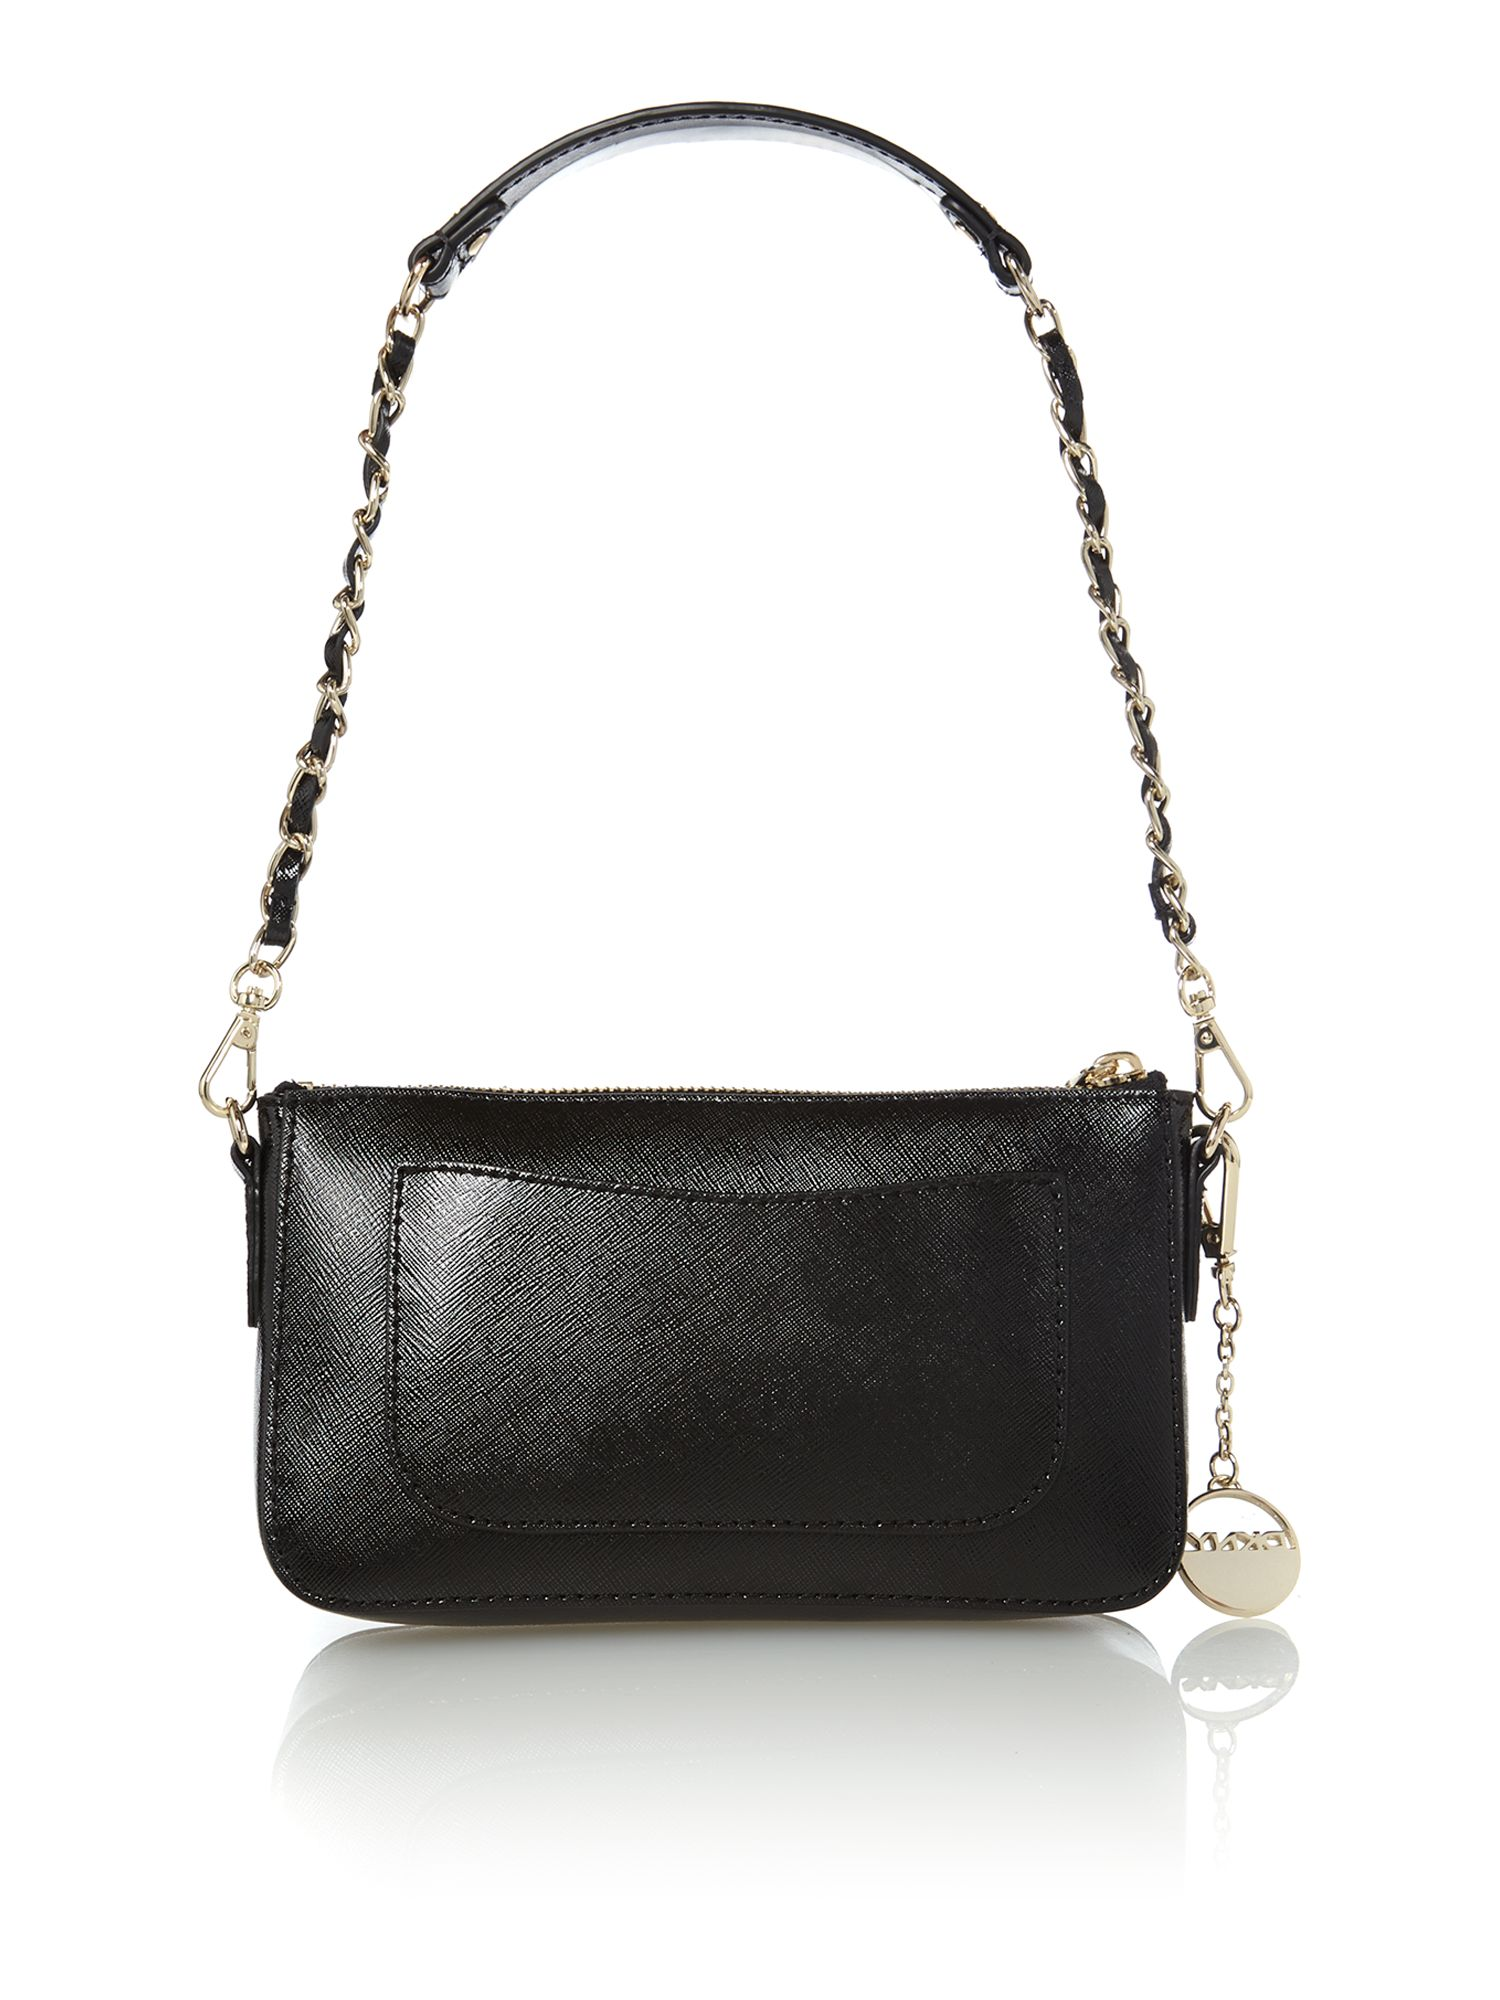 Saffiano items black stud shoulder bag